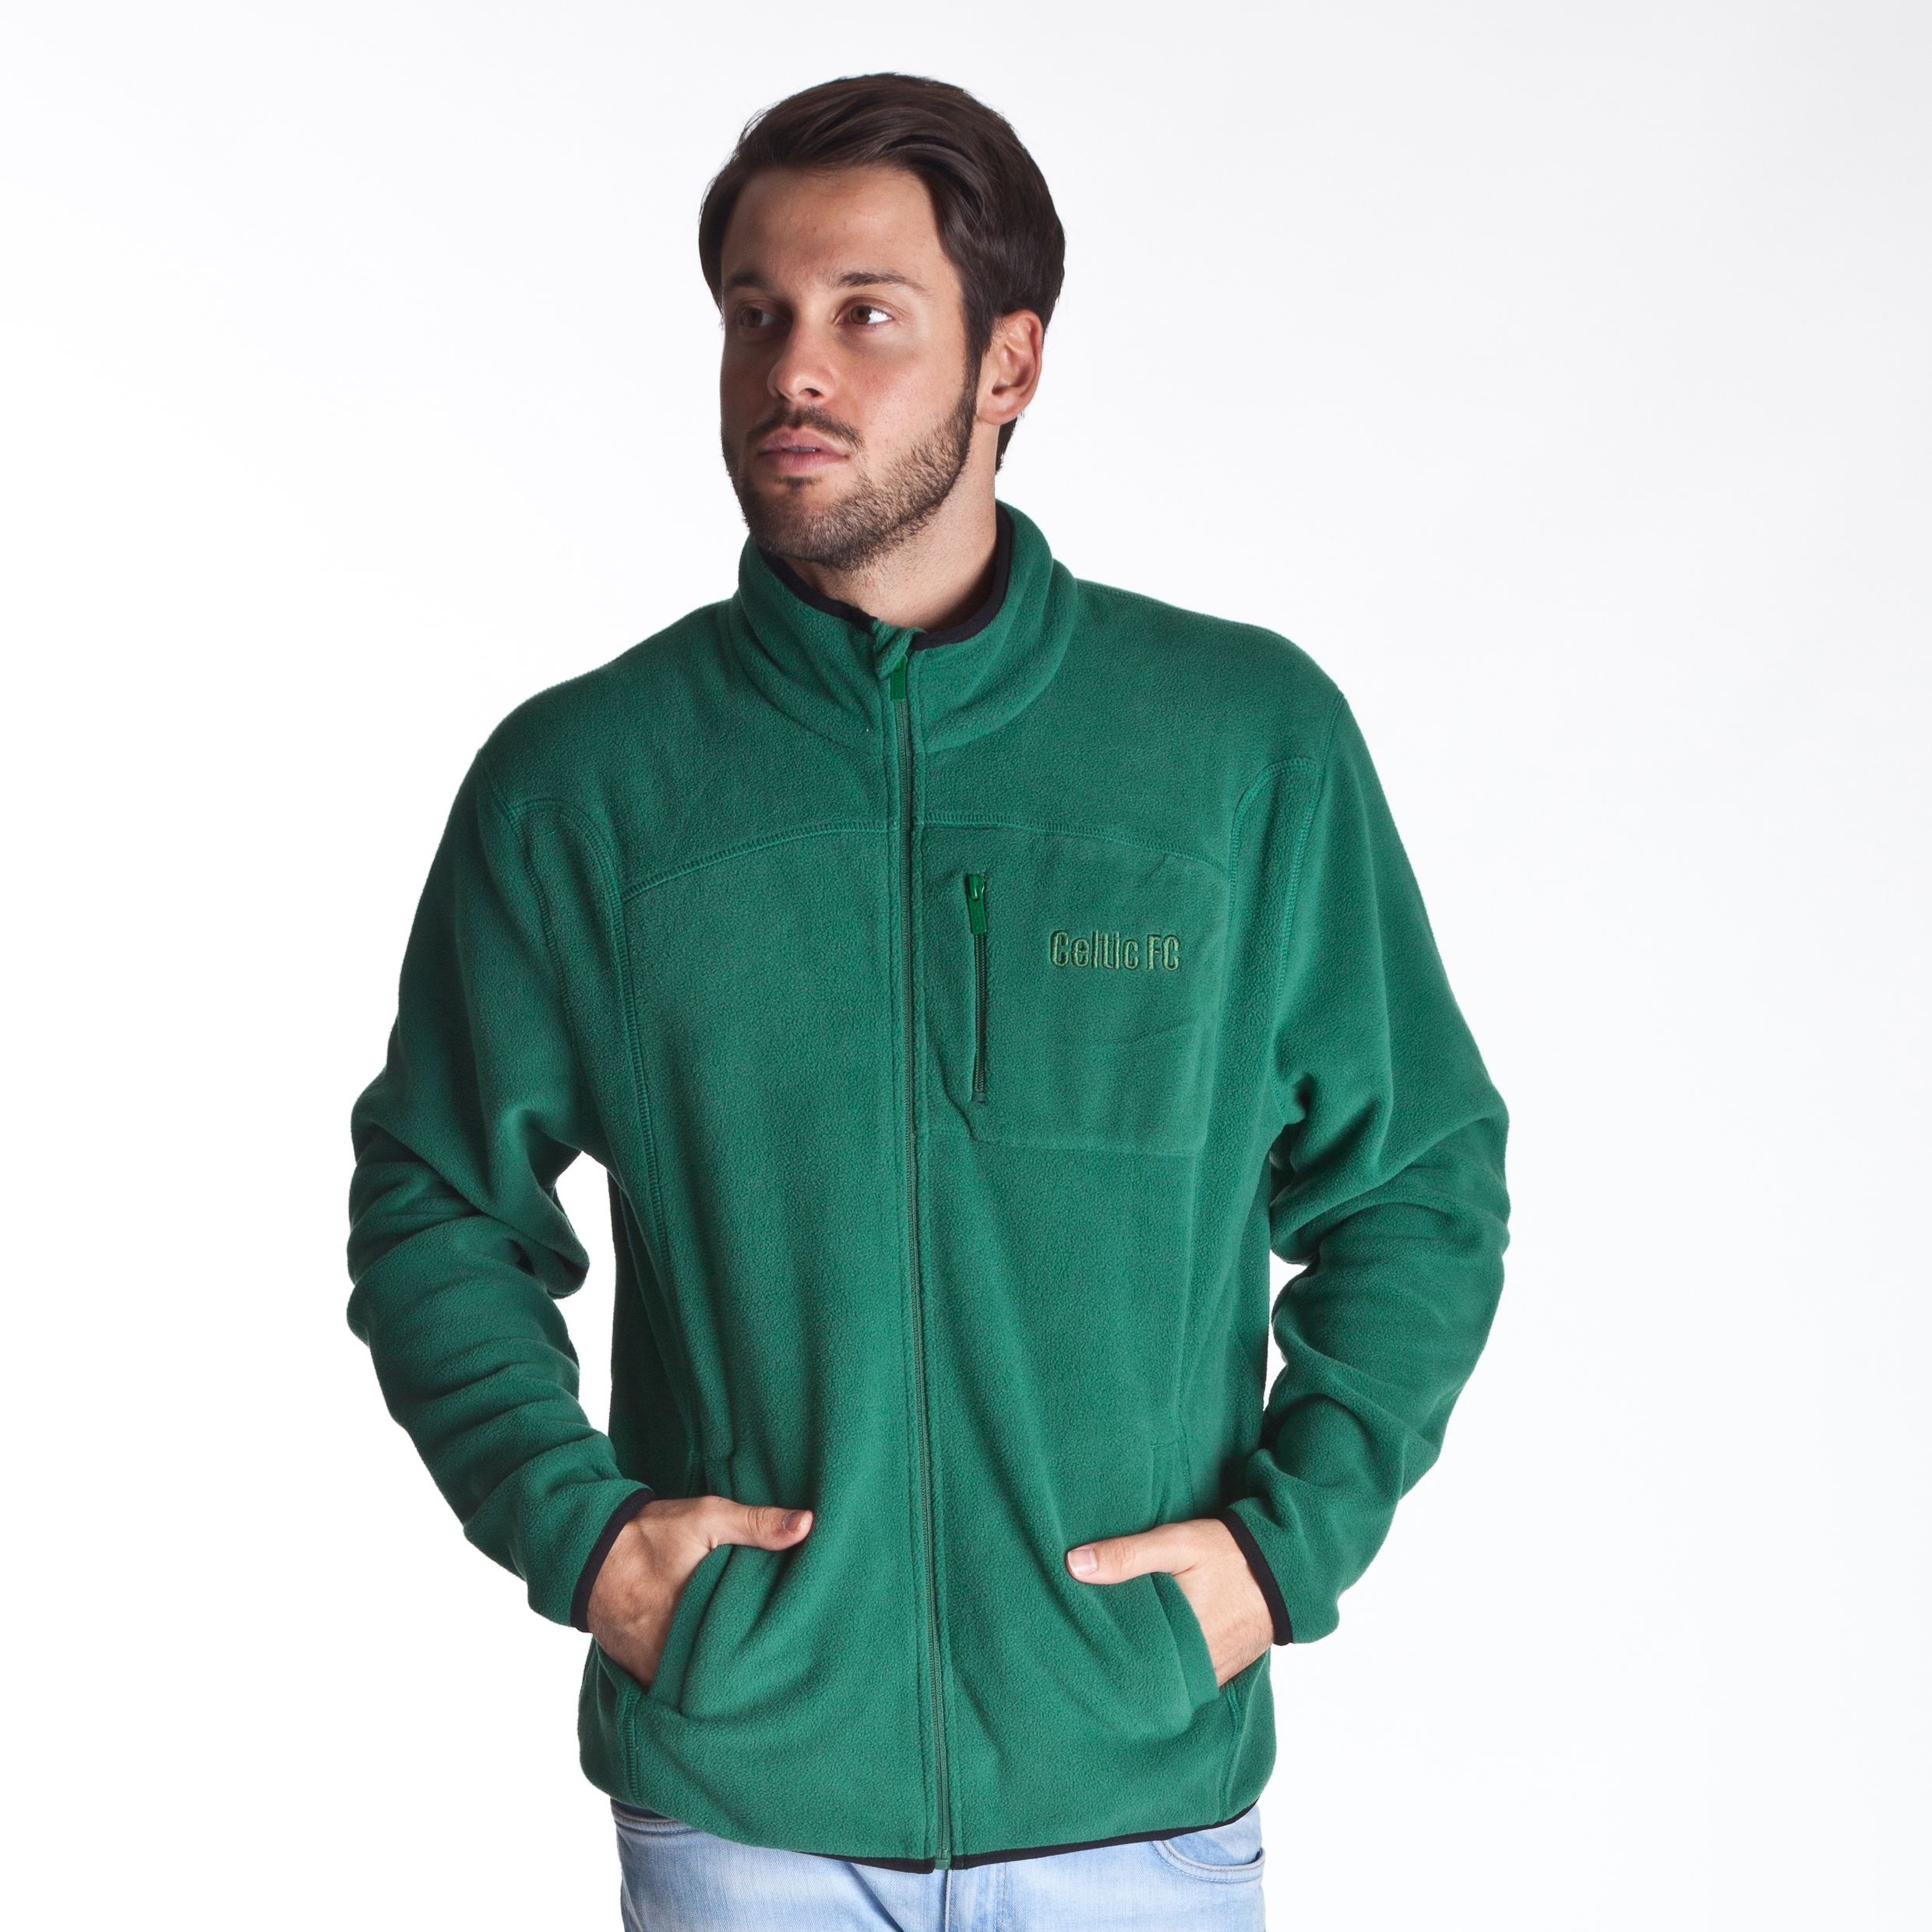 Celtic Essentials Full Zip Fleece - Mens Dk Green